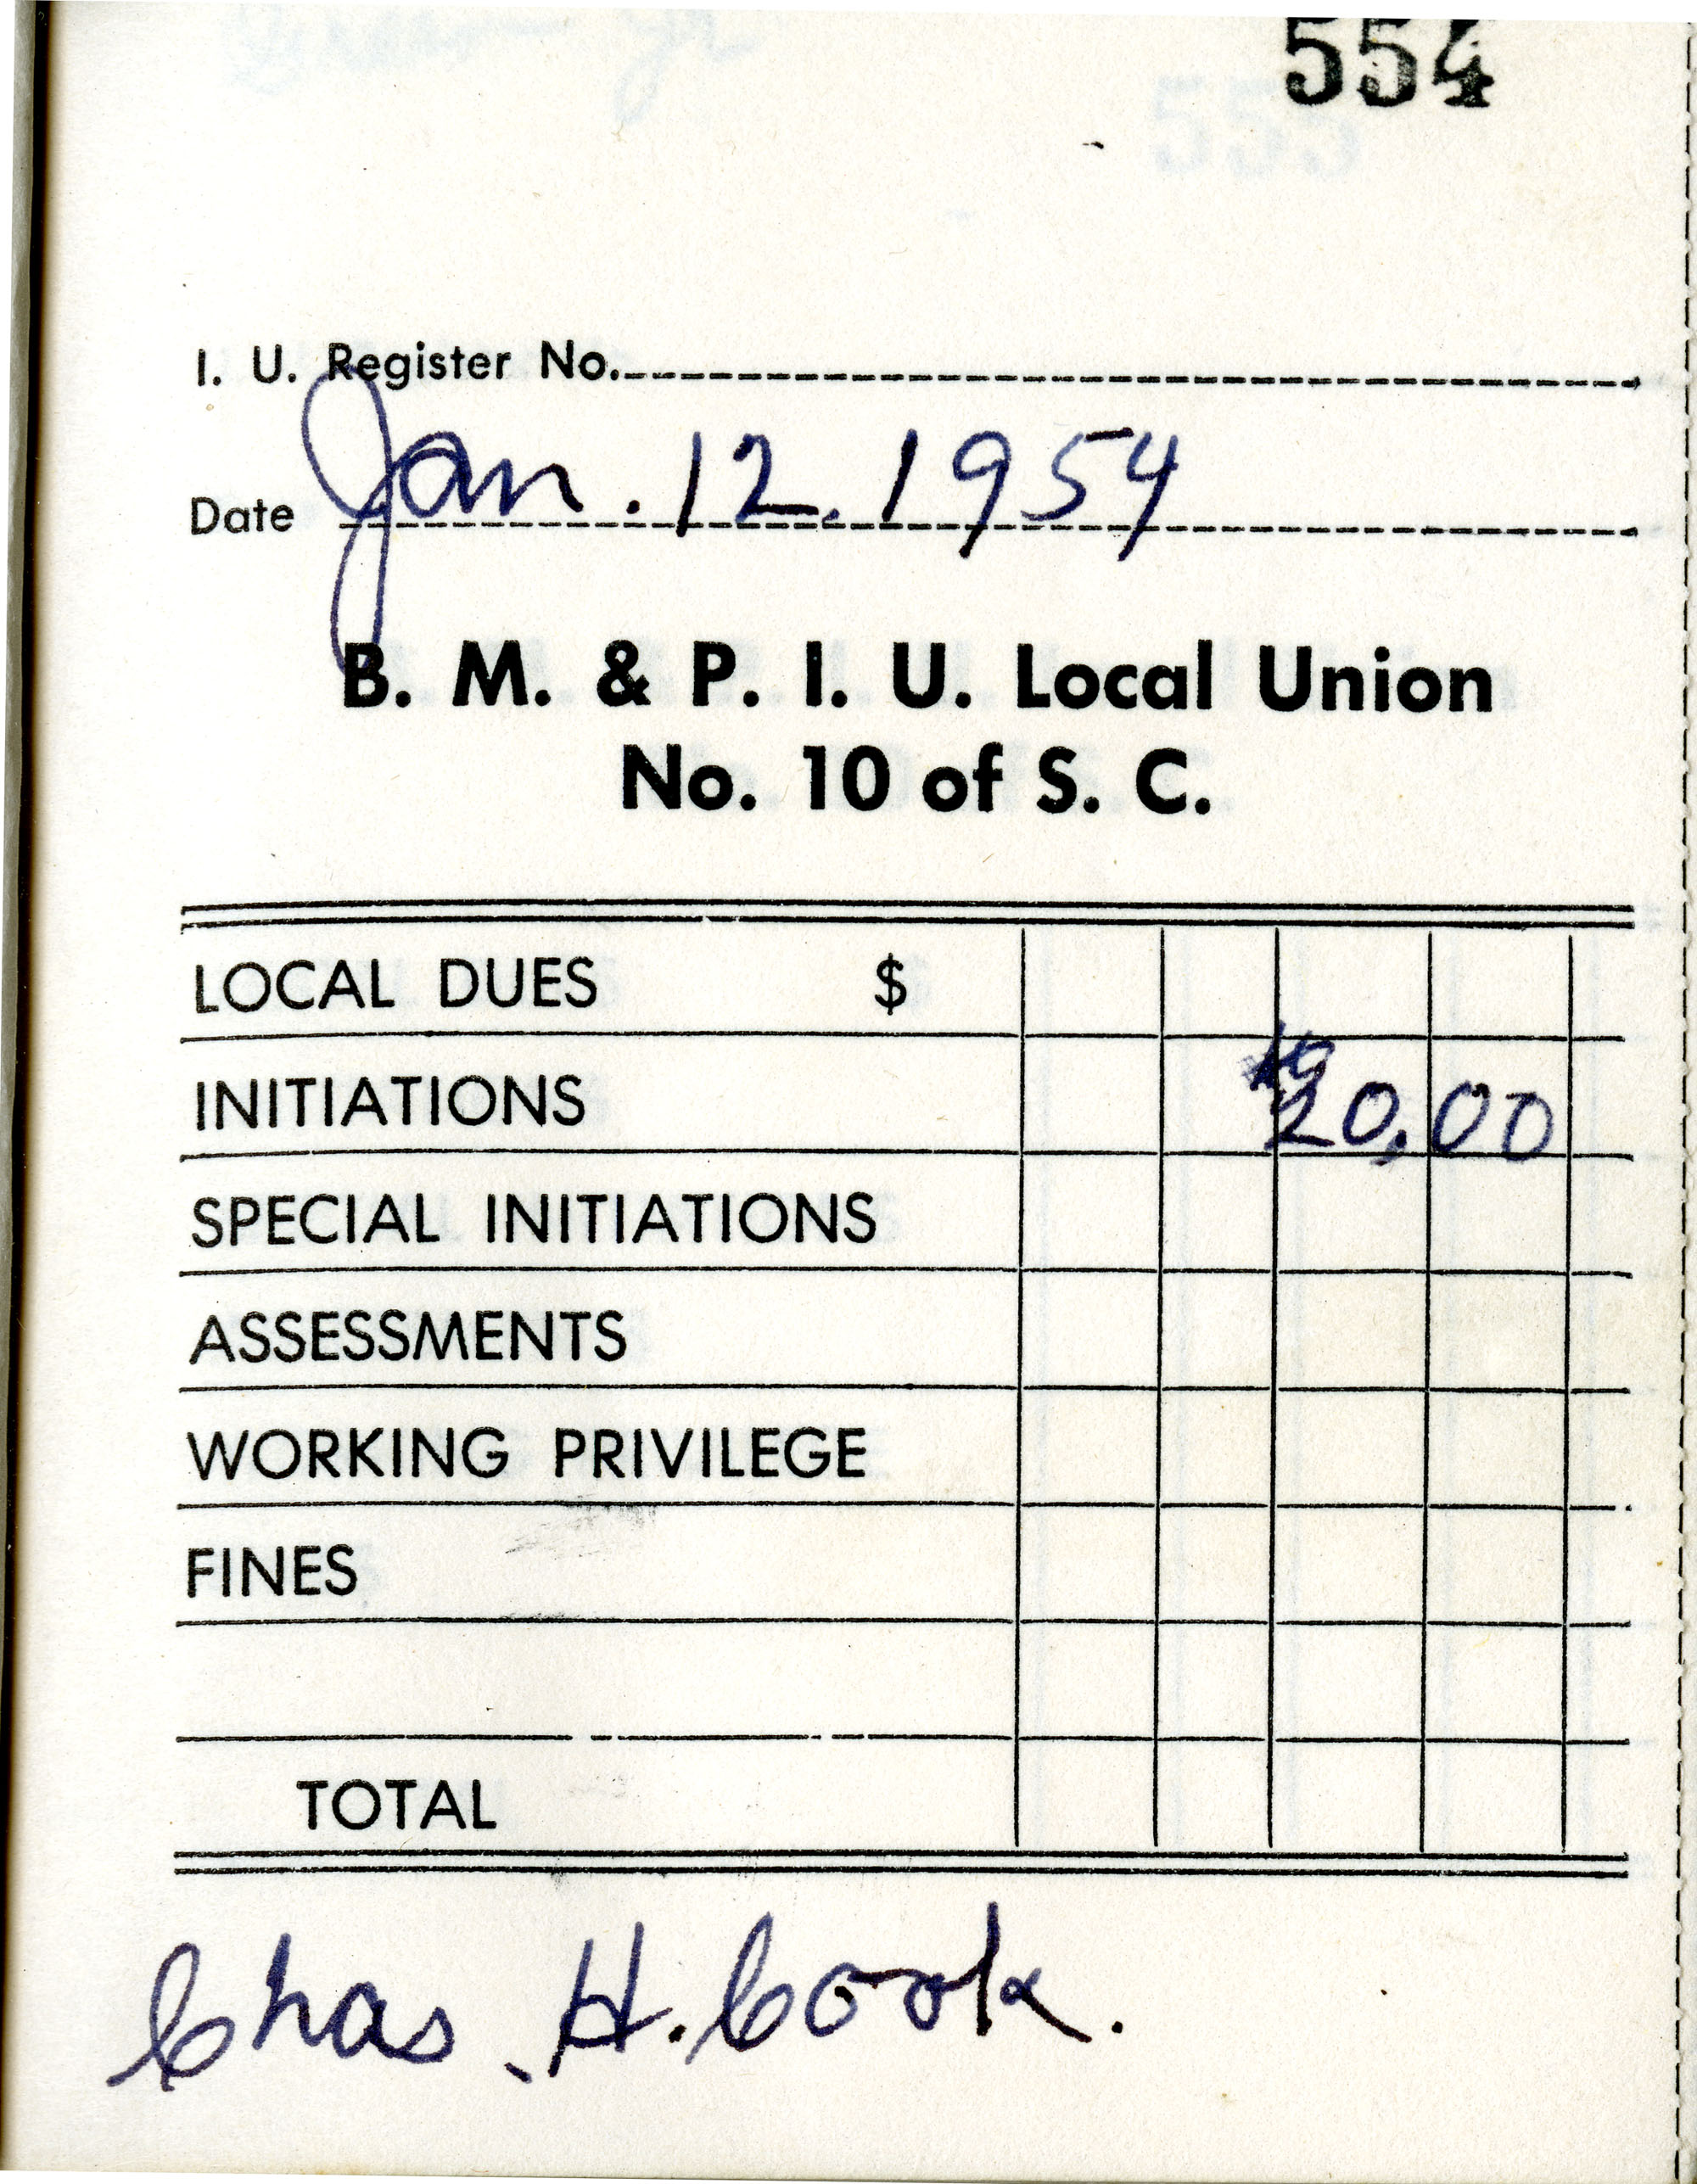 Receipt Book 6, Page 5